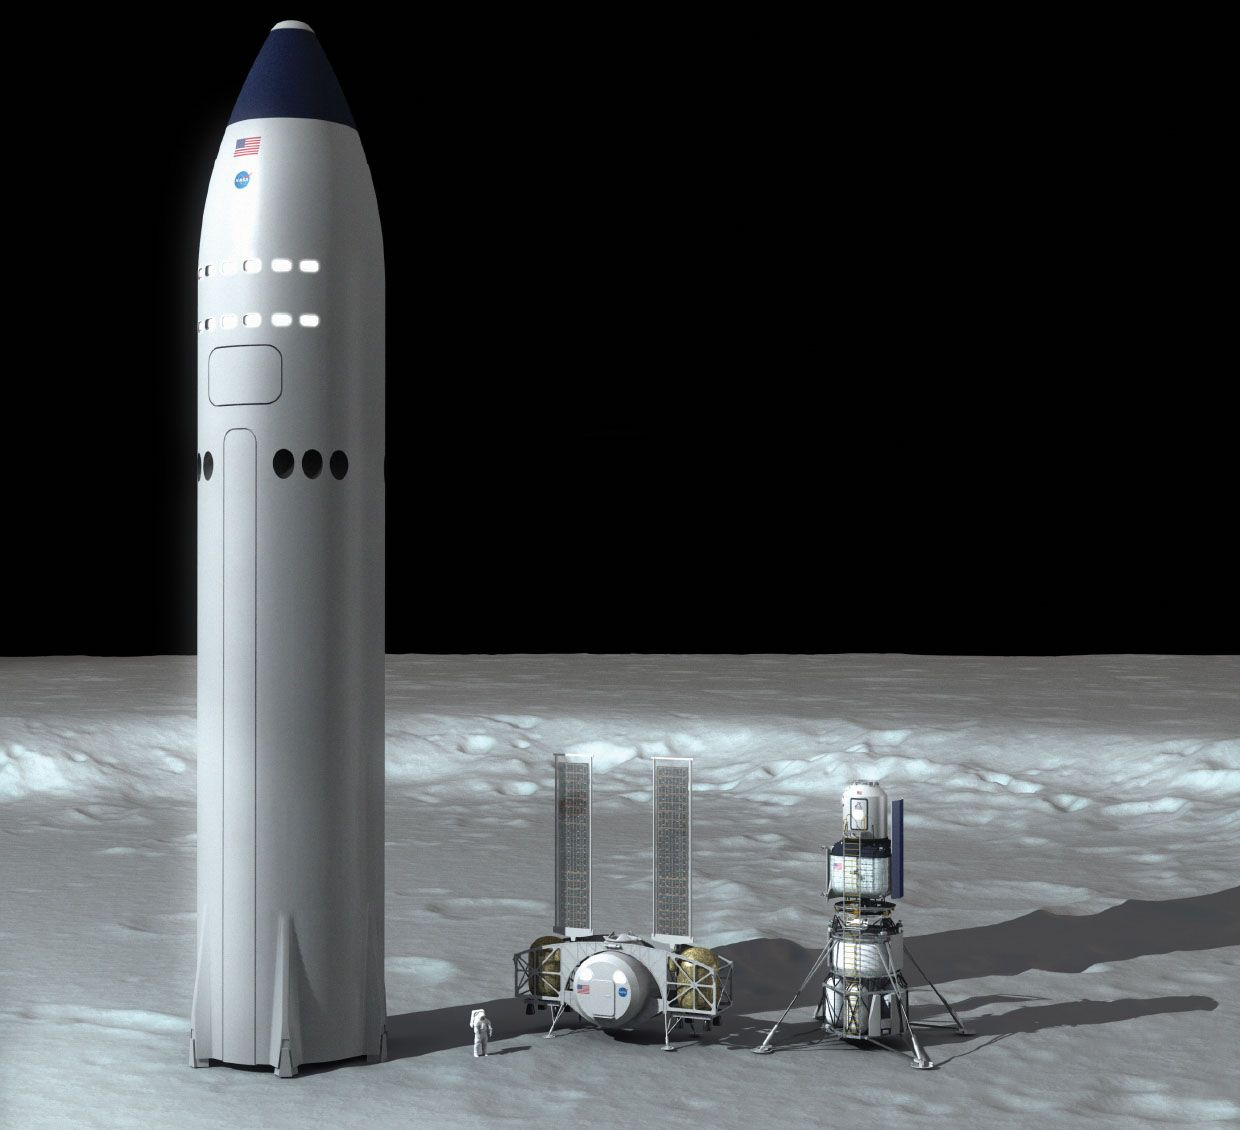 Image showing the dramatic differences in three lander designs.